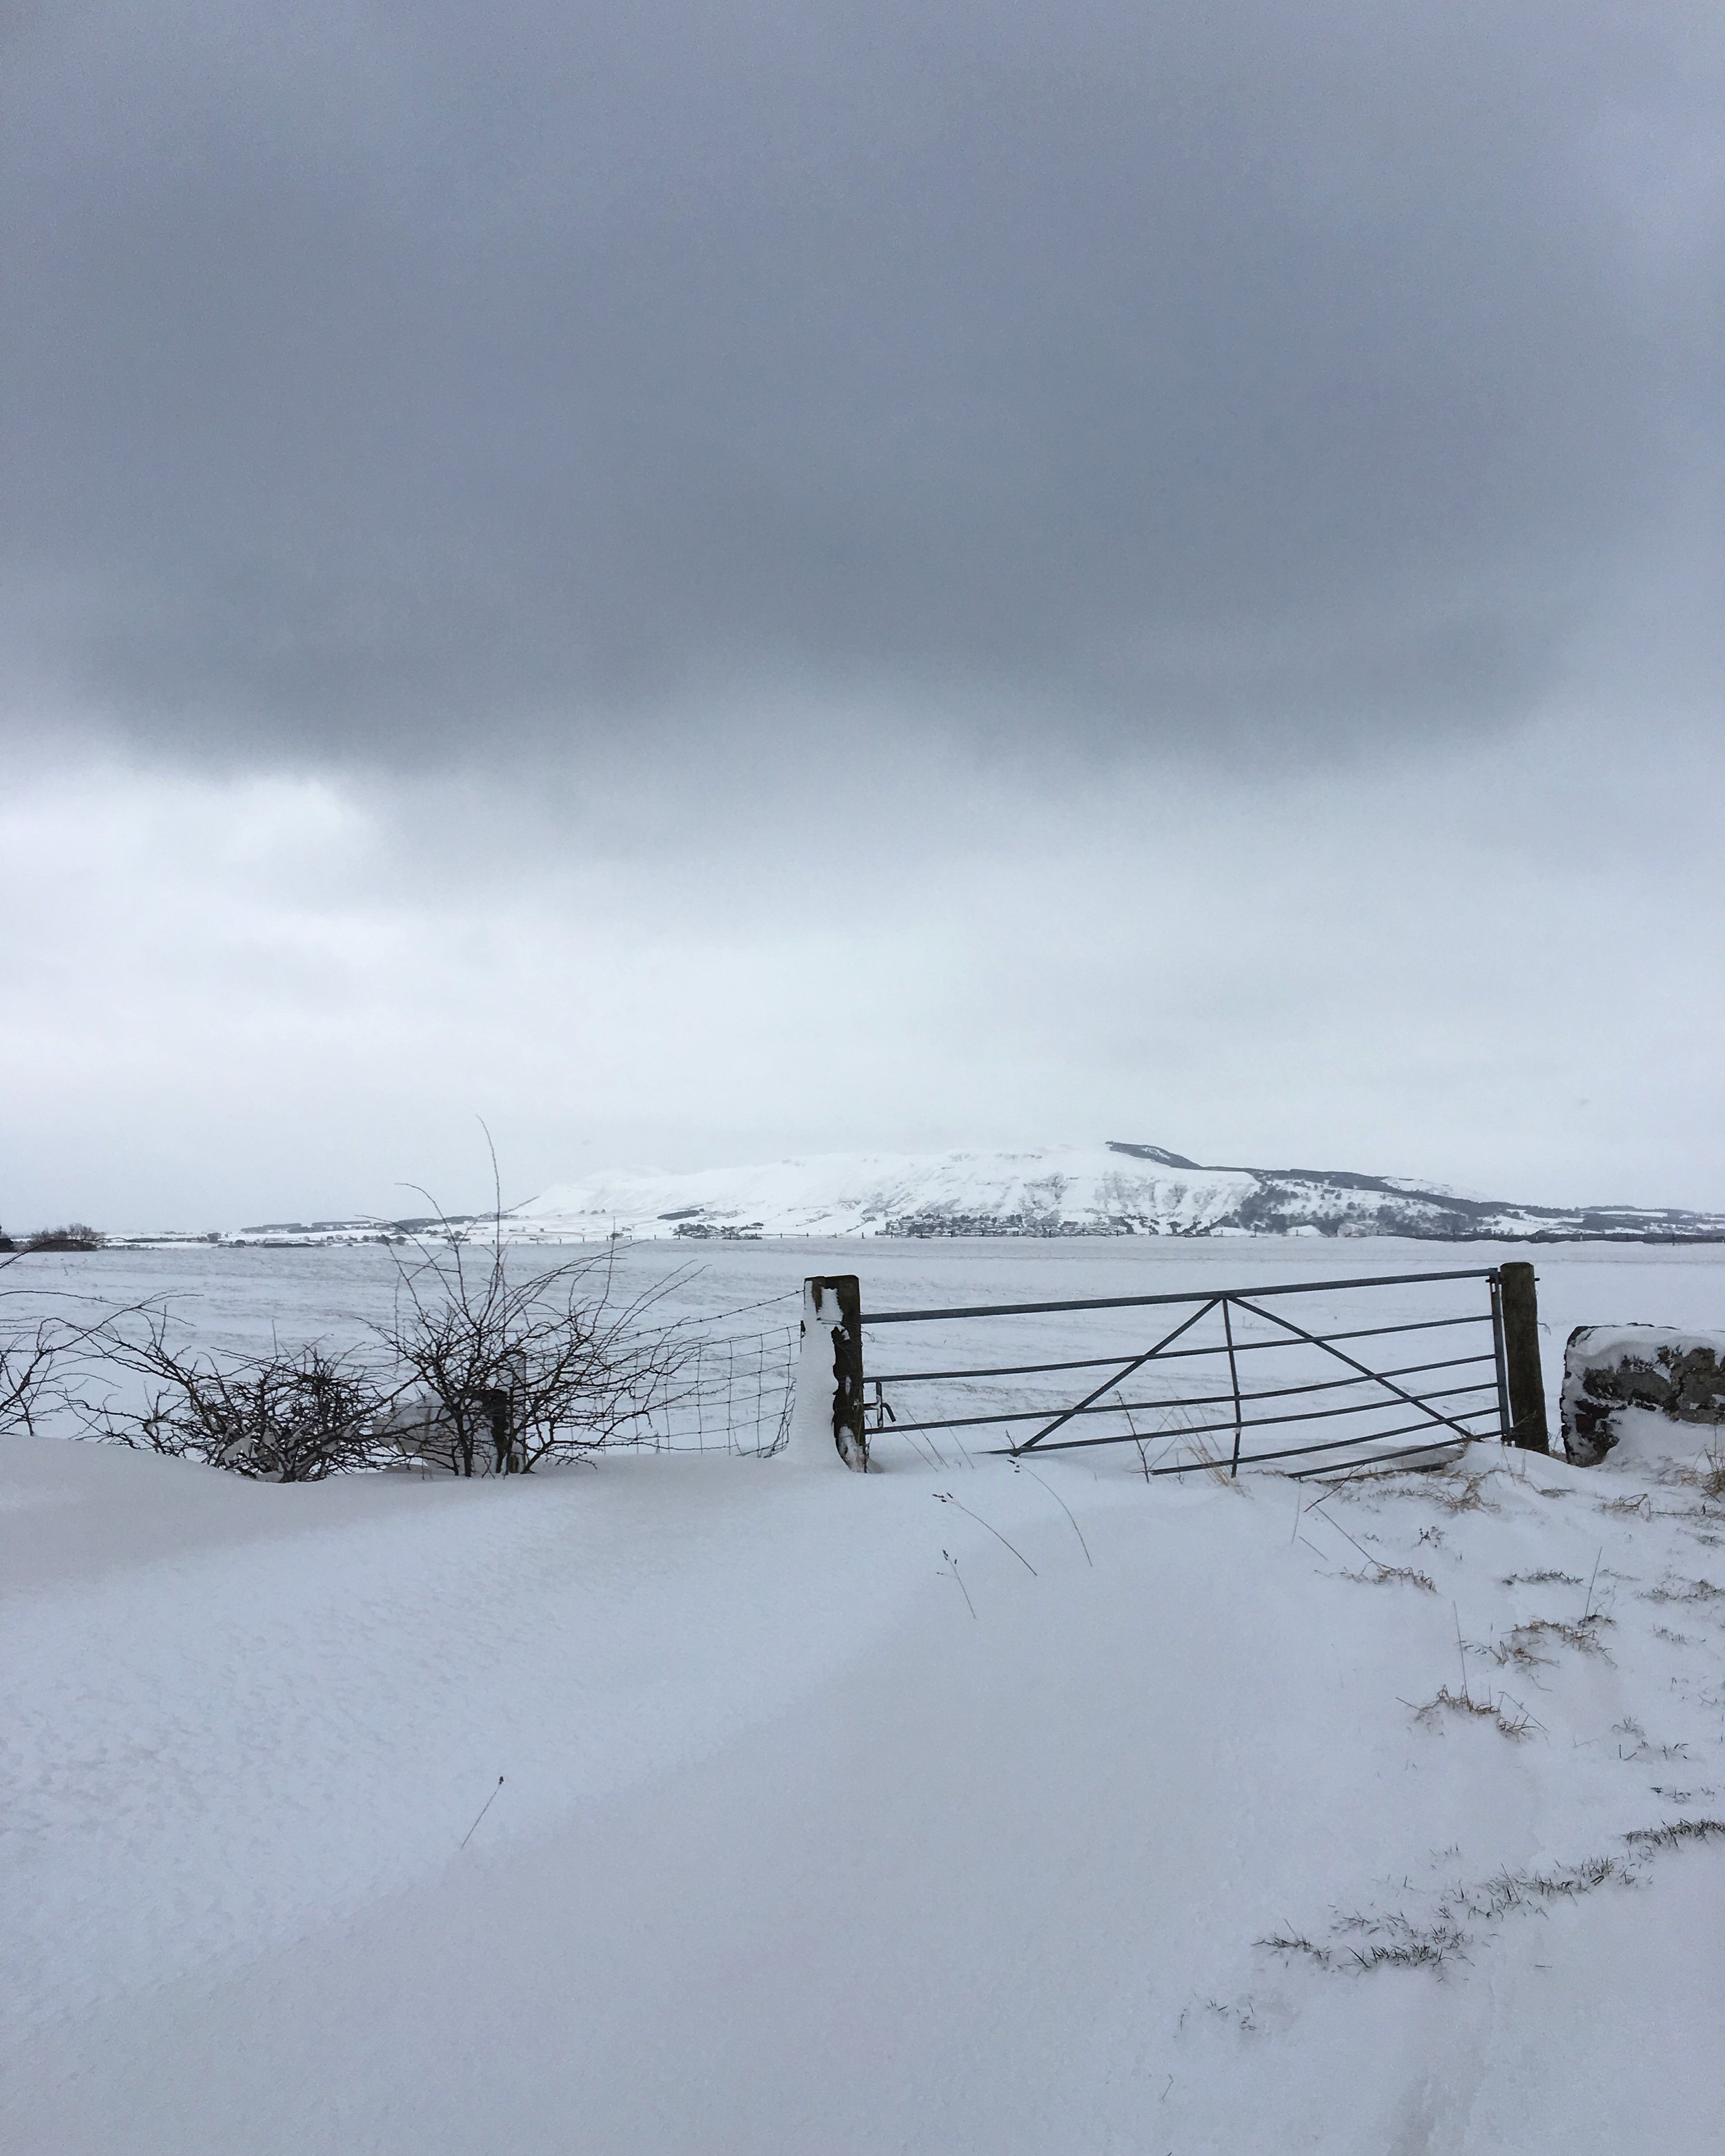 The Beast from the East drifting across the open fields and down to the loch.